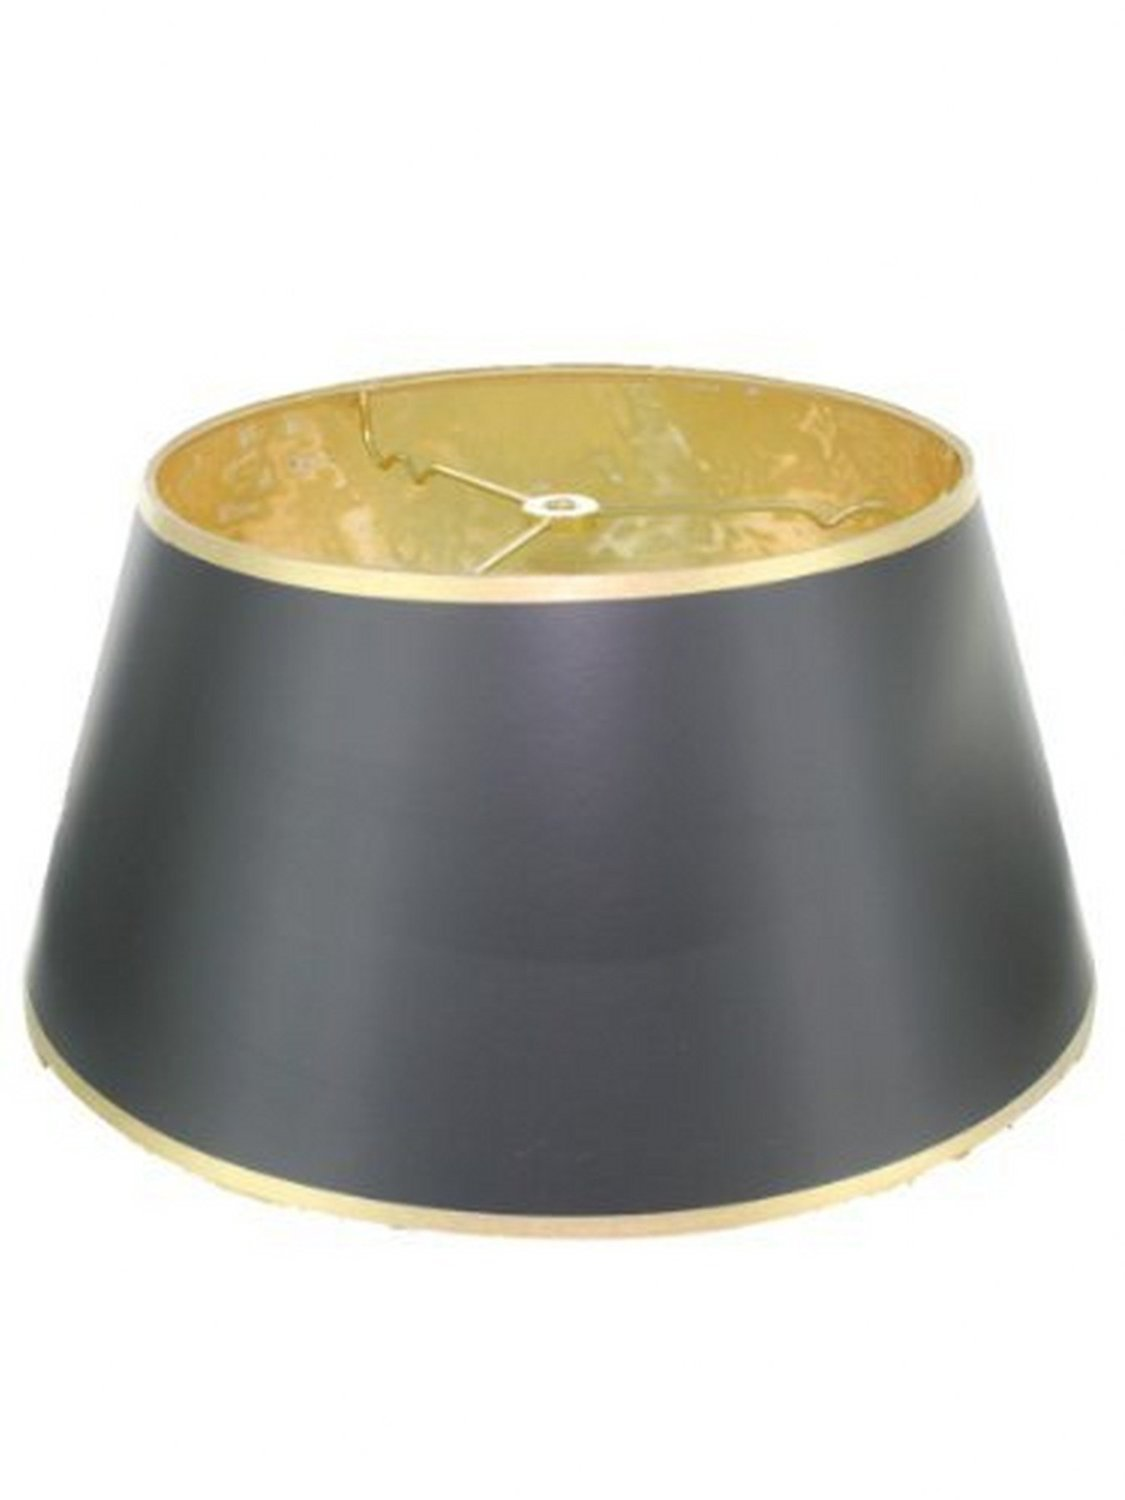 Upgradelights Black with Gold 10 Inch Bouillotte Lampshade in a Glossy Black Parchment (8x10x5.5)